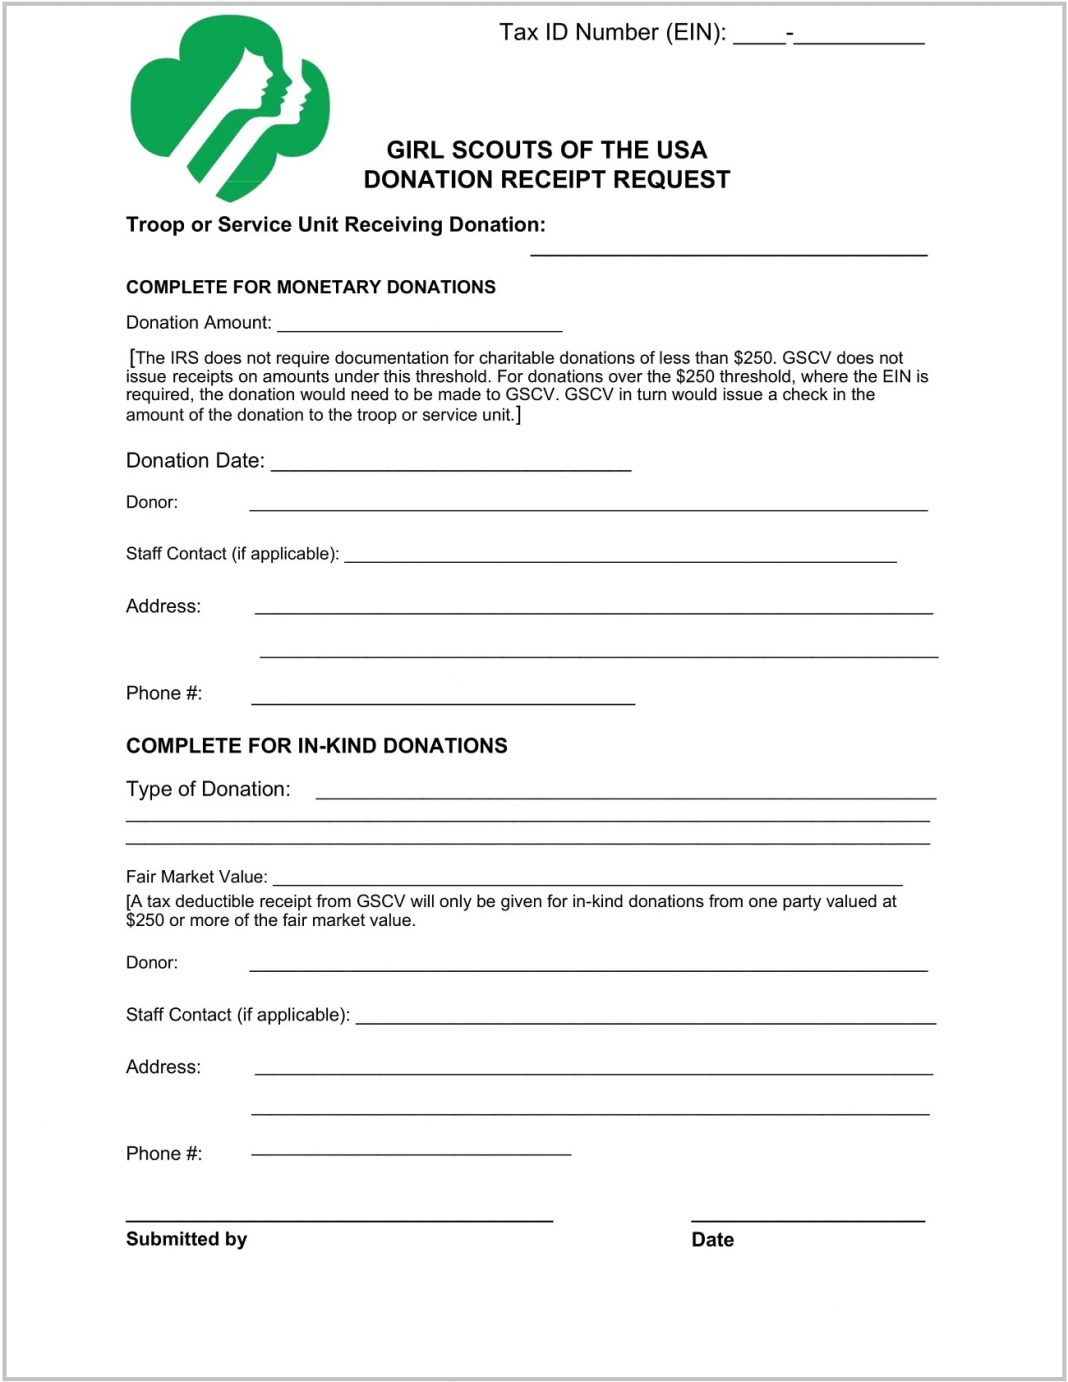 Girl Scouts Donation Receipt Form Template Word Maker Pdf In-kind Charitable  Sample Large